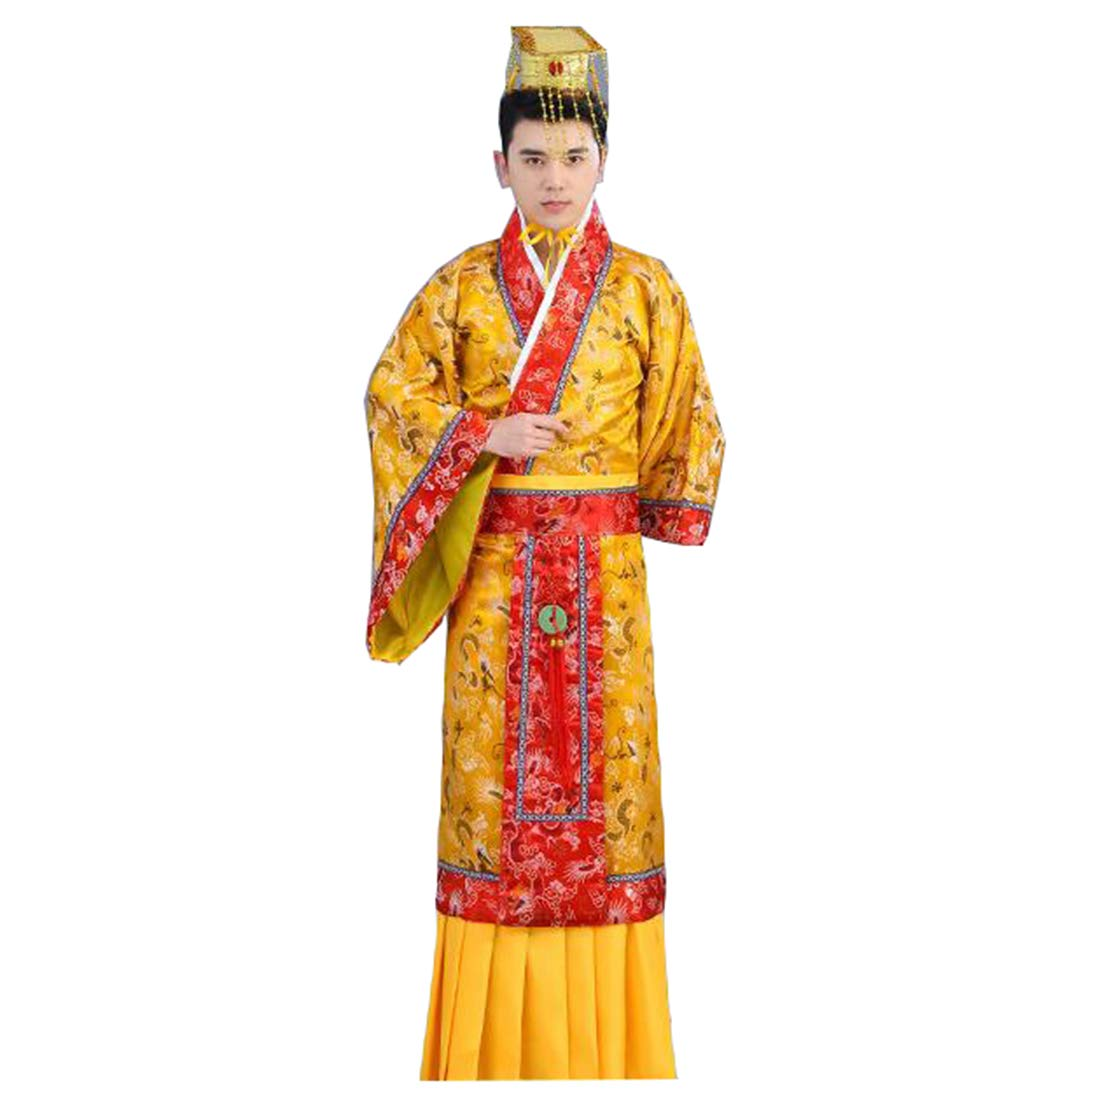 Ez-sofei Men's Ancient Chinese Han Dynasty Traditional Hanfu Robe Cosplay Costume (S, F-yellow&red)